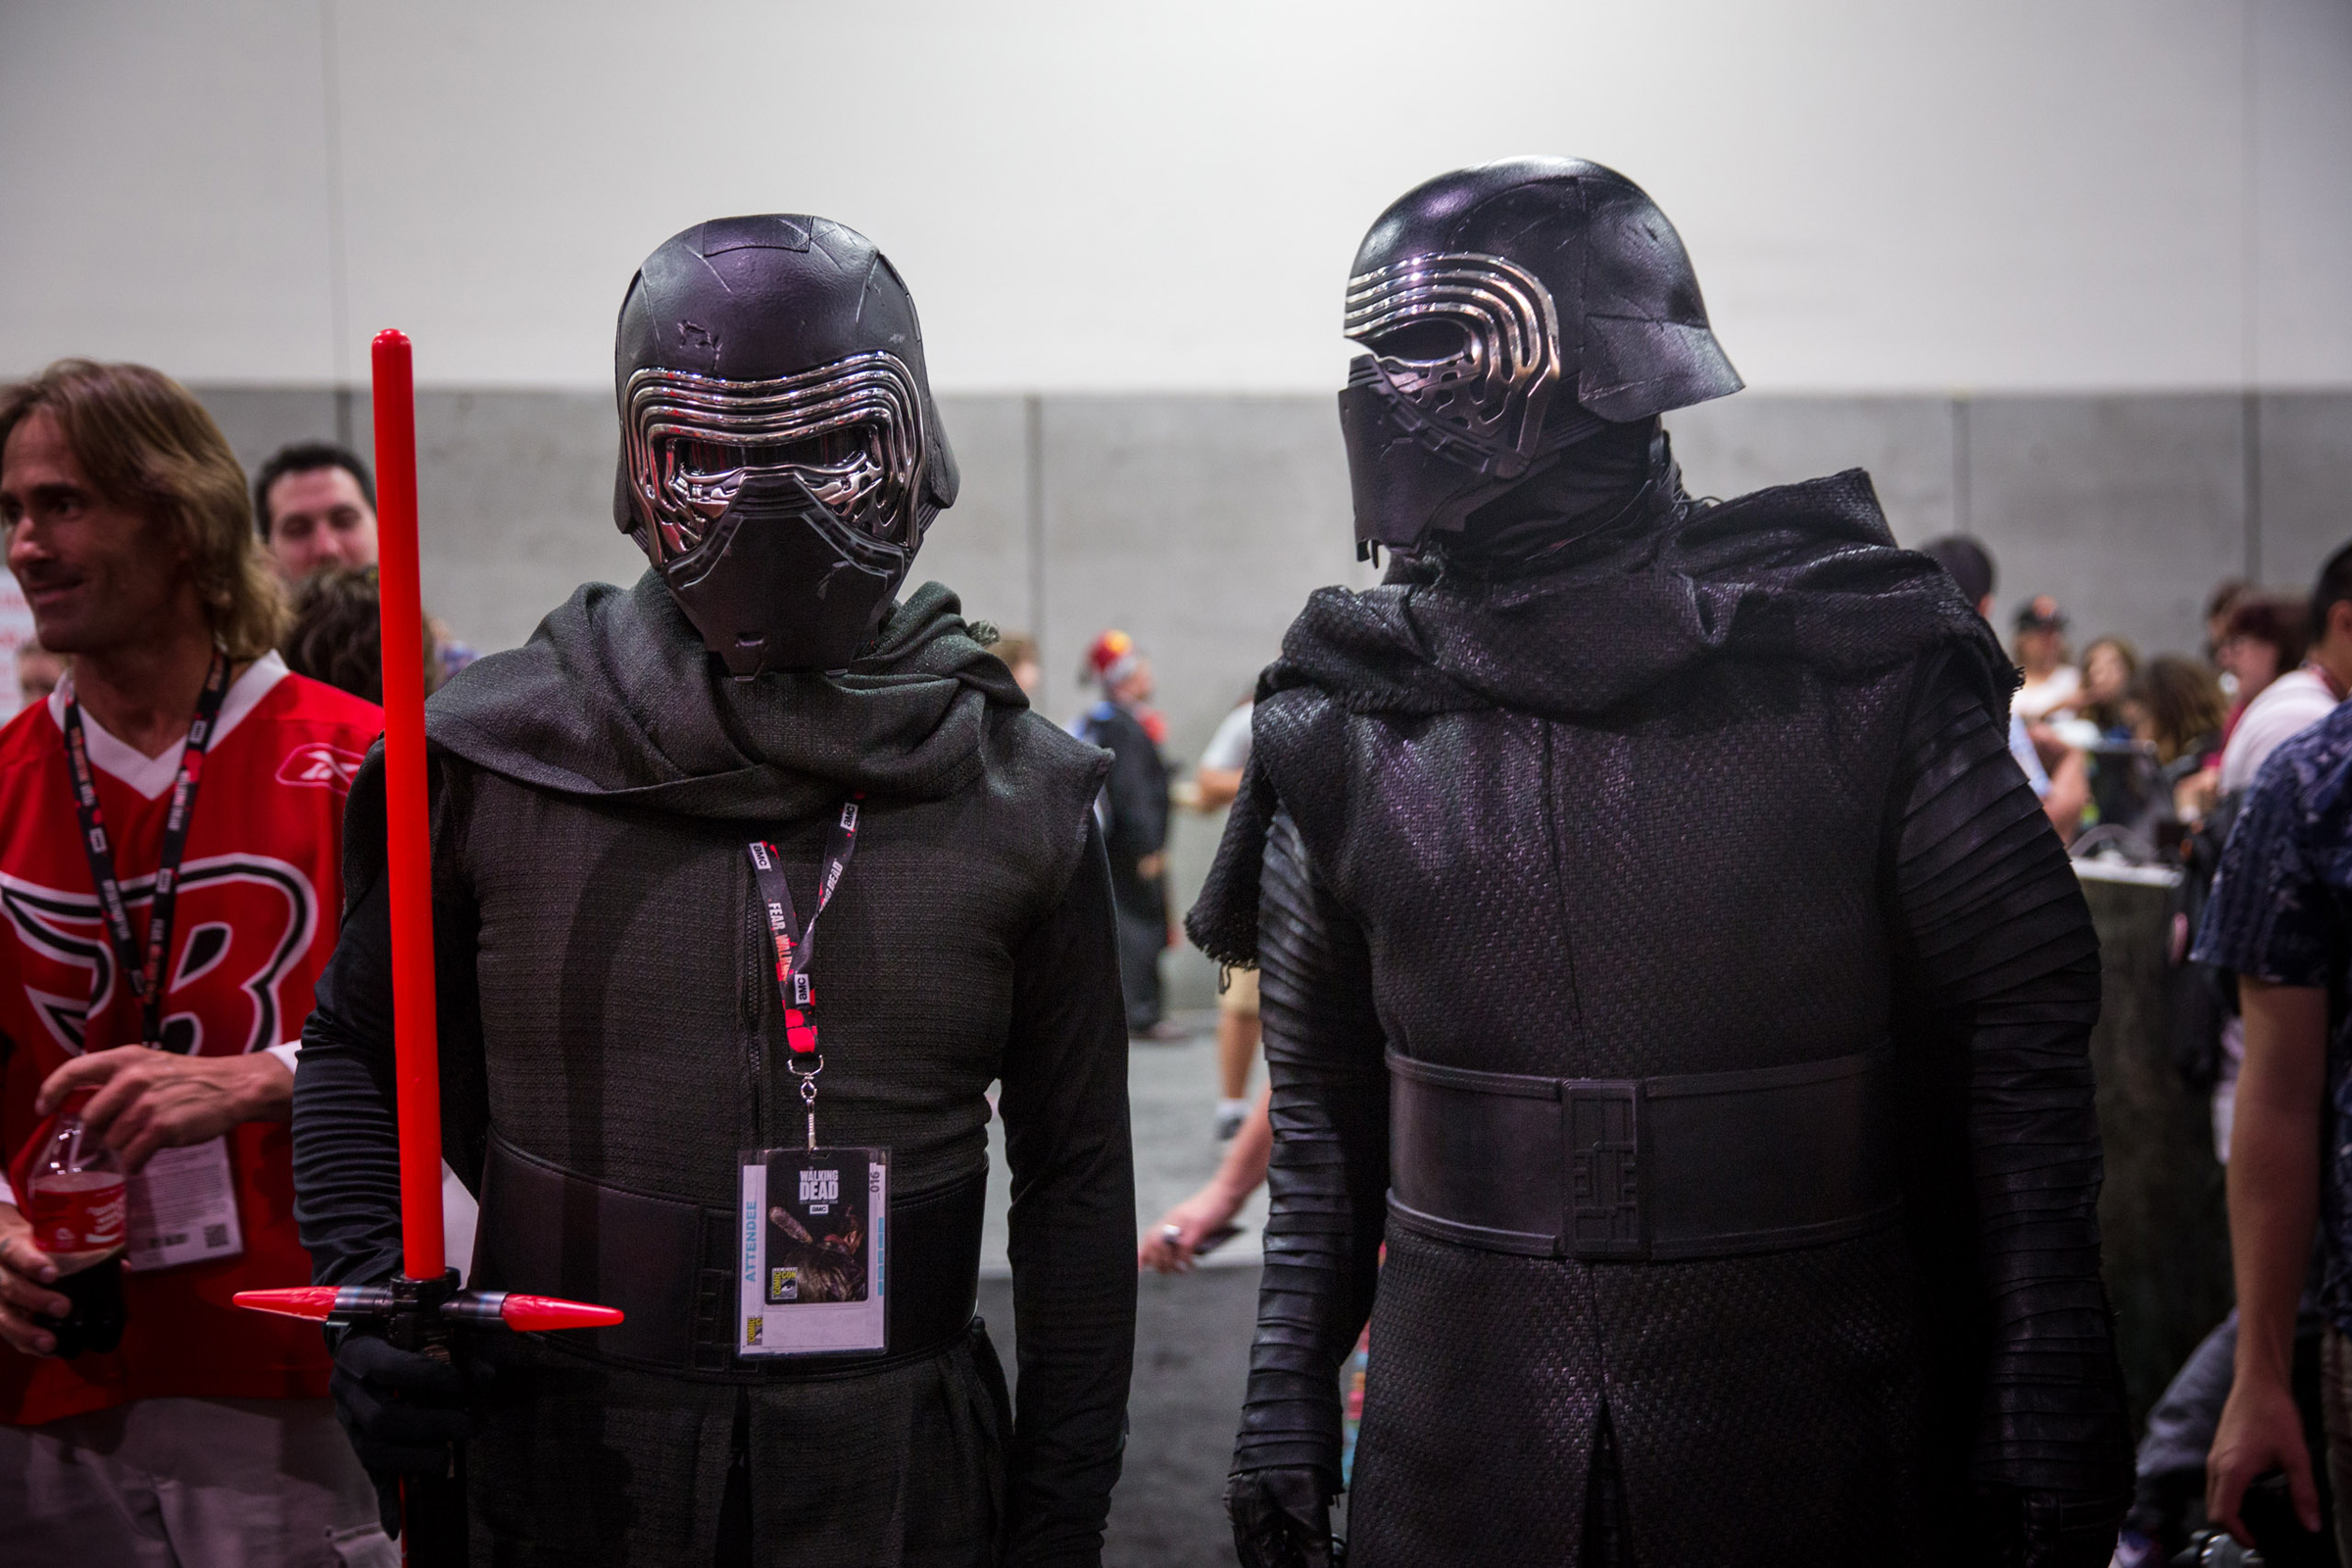 undercover mythbuster adam savage goes incognito as kylo ren at